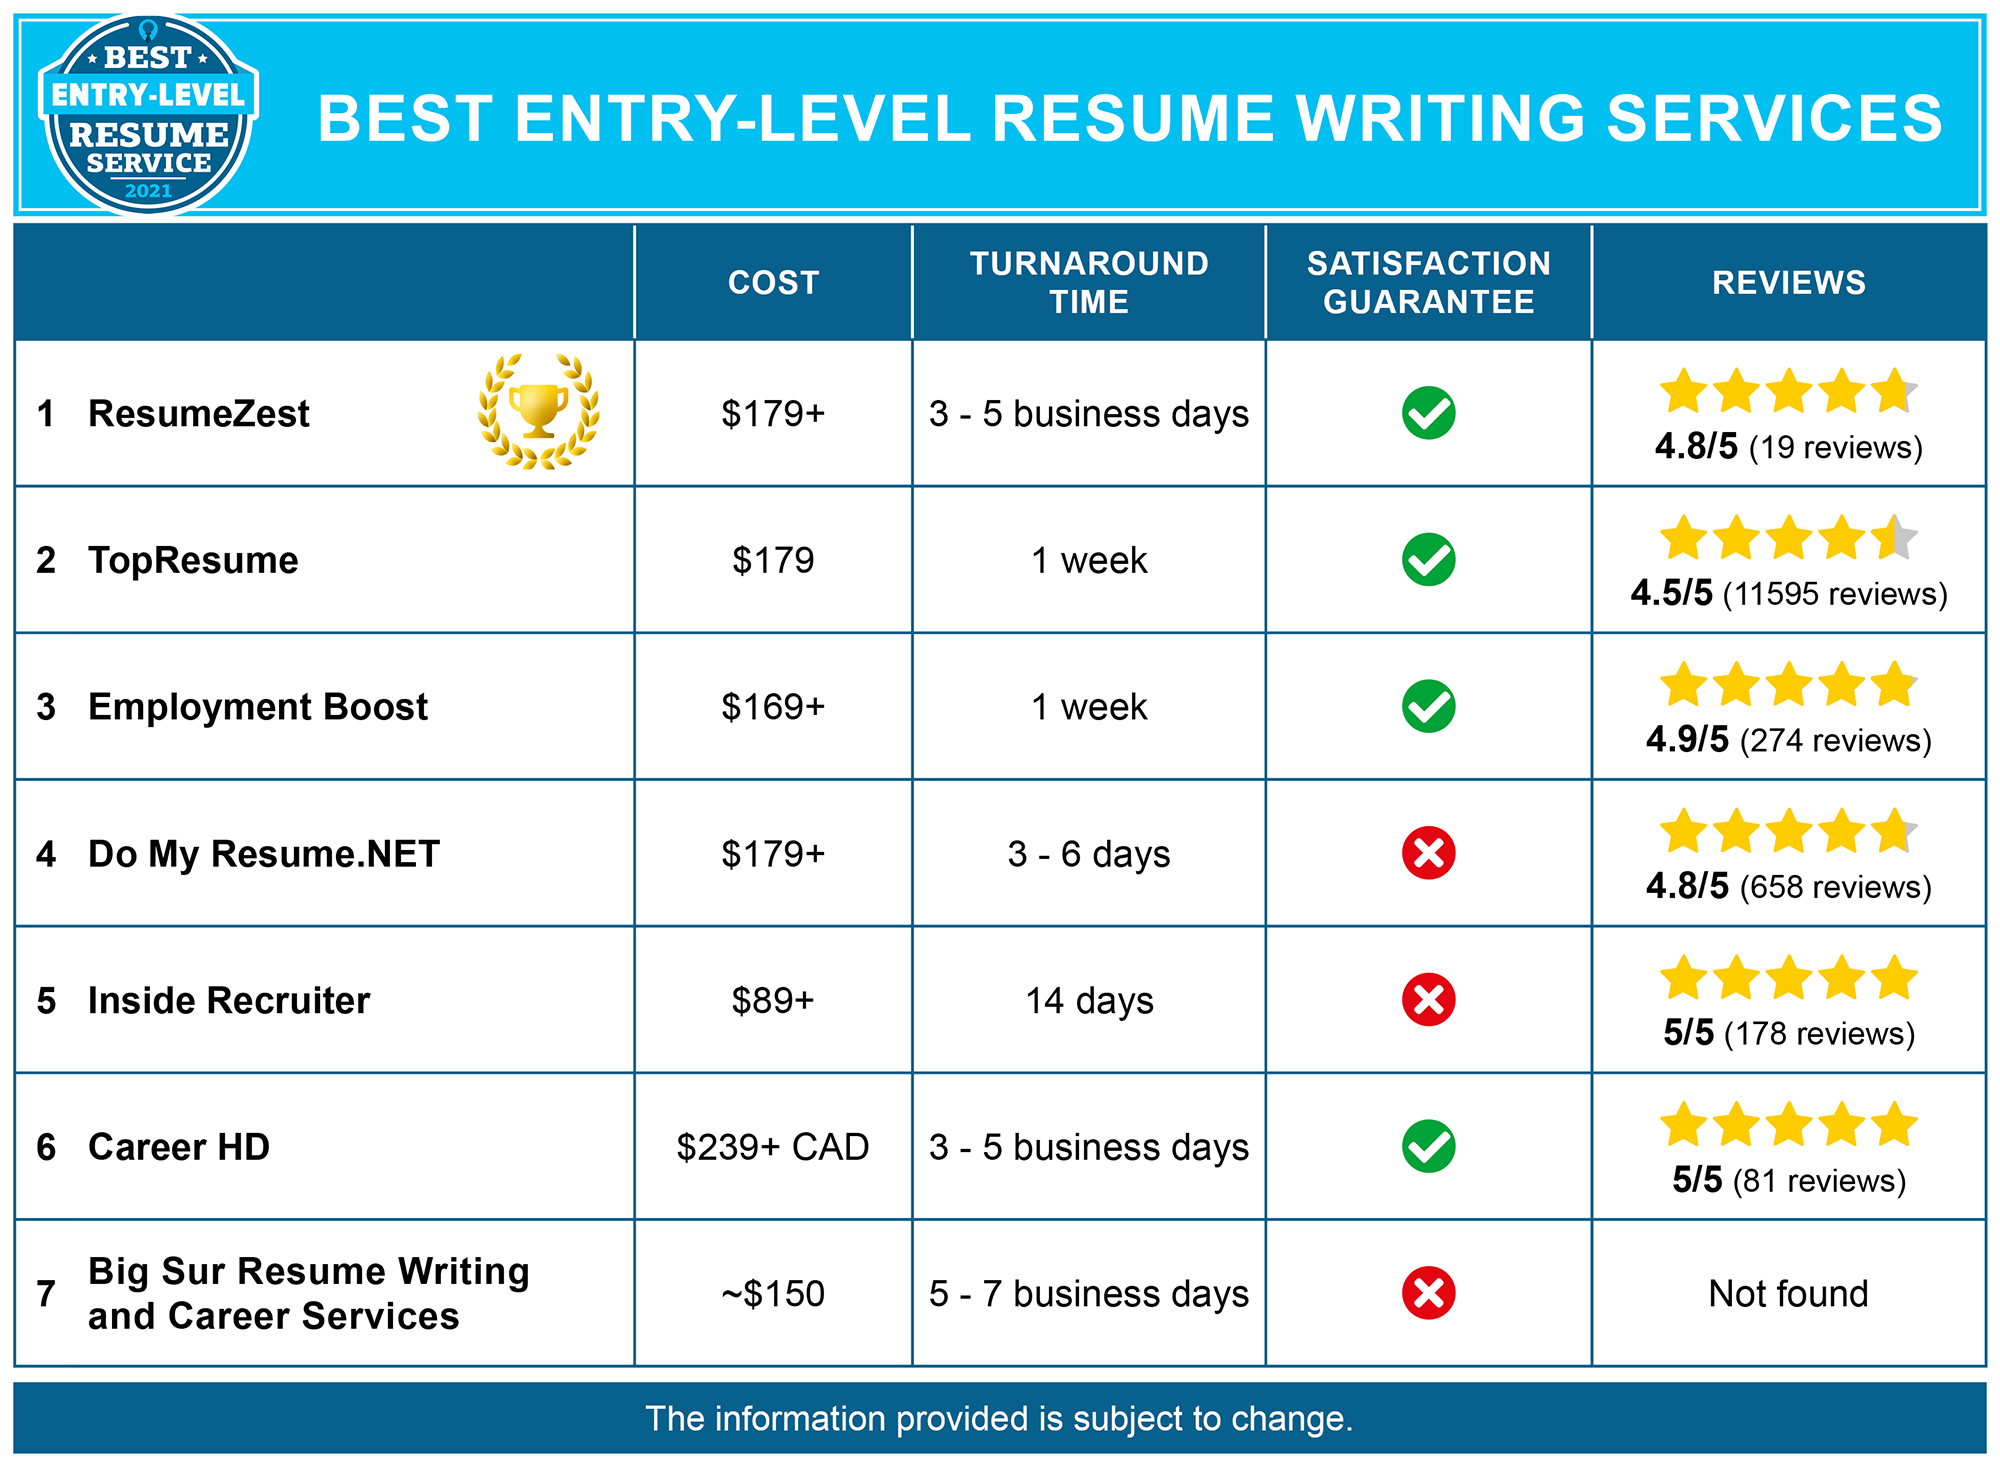 Best Entry_level Resume Services